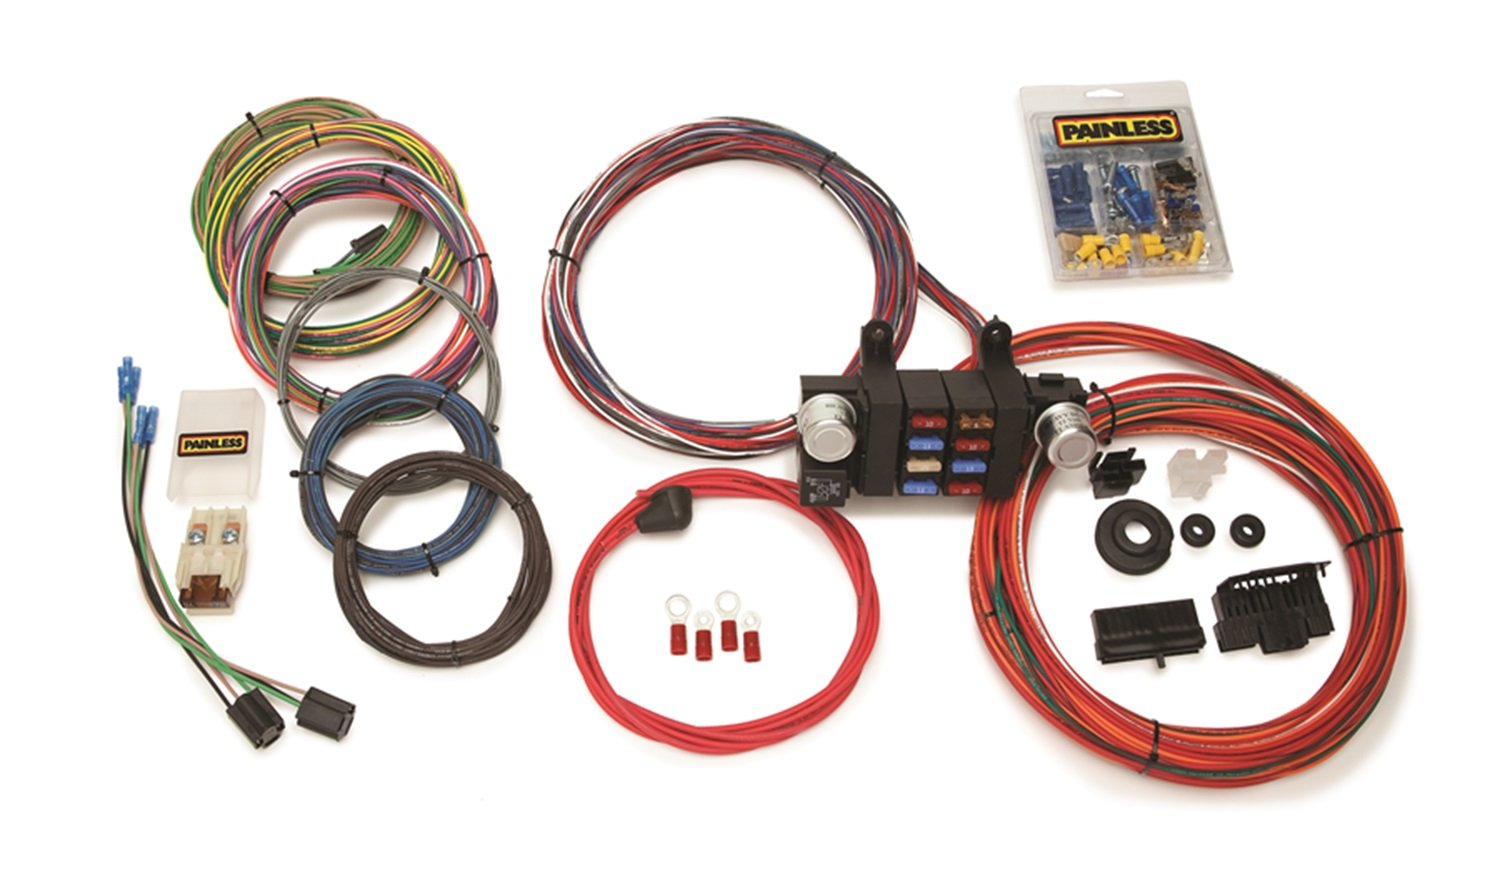 714FypRjpJL._SL1500_ amazon com painless wiring 10308 8 circuit mod t bucket h automotive wiring harness at couponss.co